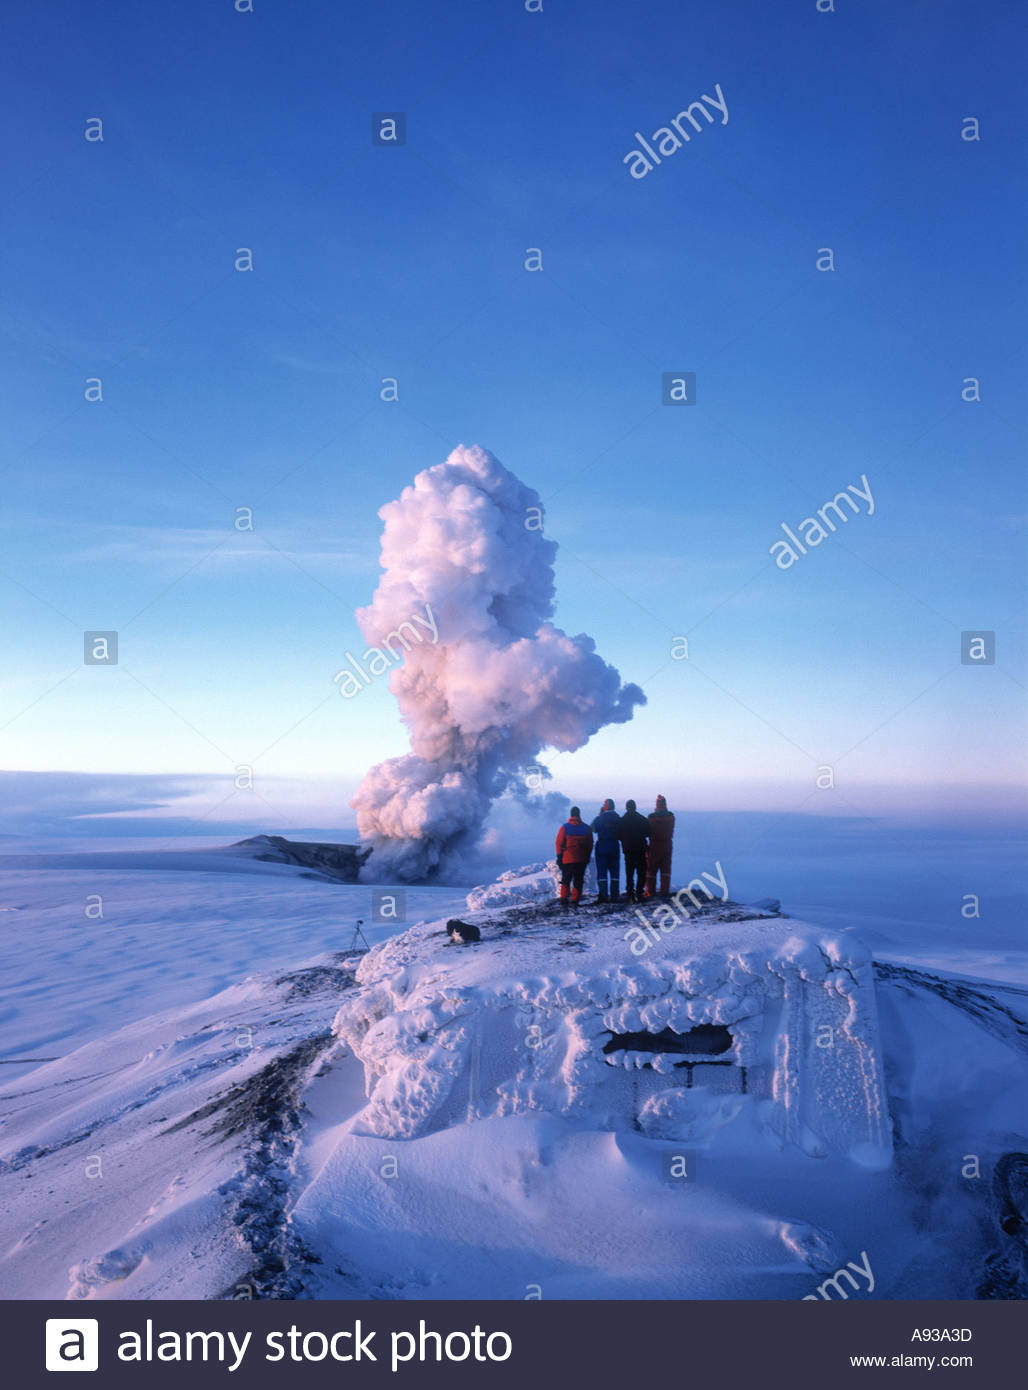 Volcanic eruption in Grimsvotn Vatnajokull Iceland in December 1998 Tourists watching from the Roof of a Lodge - Stock Image